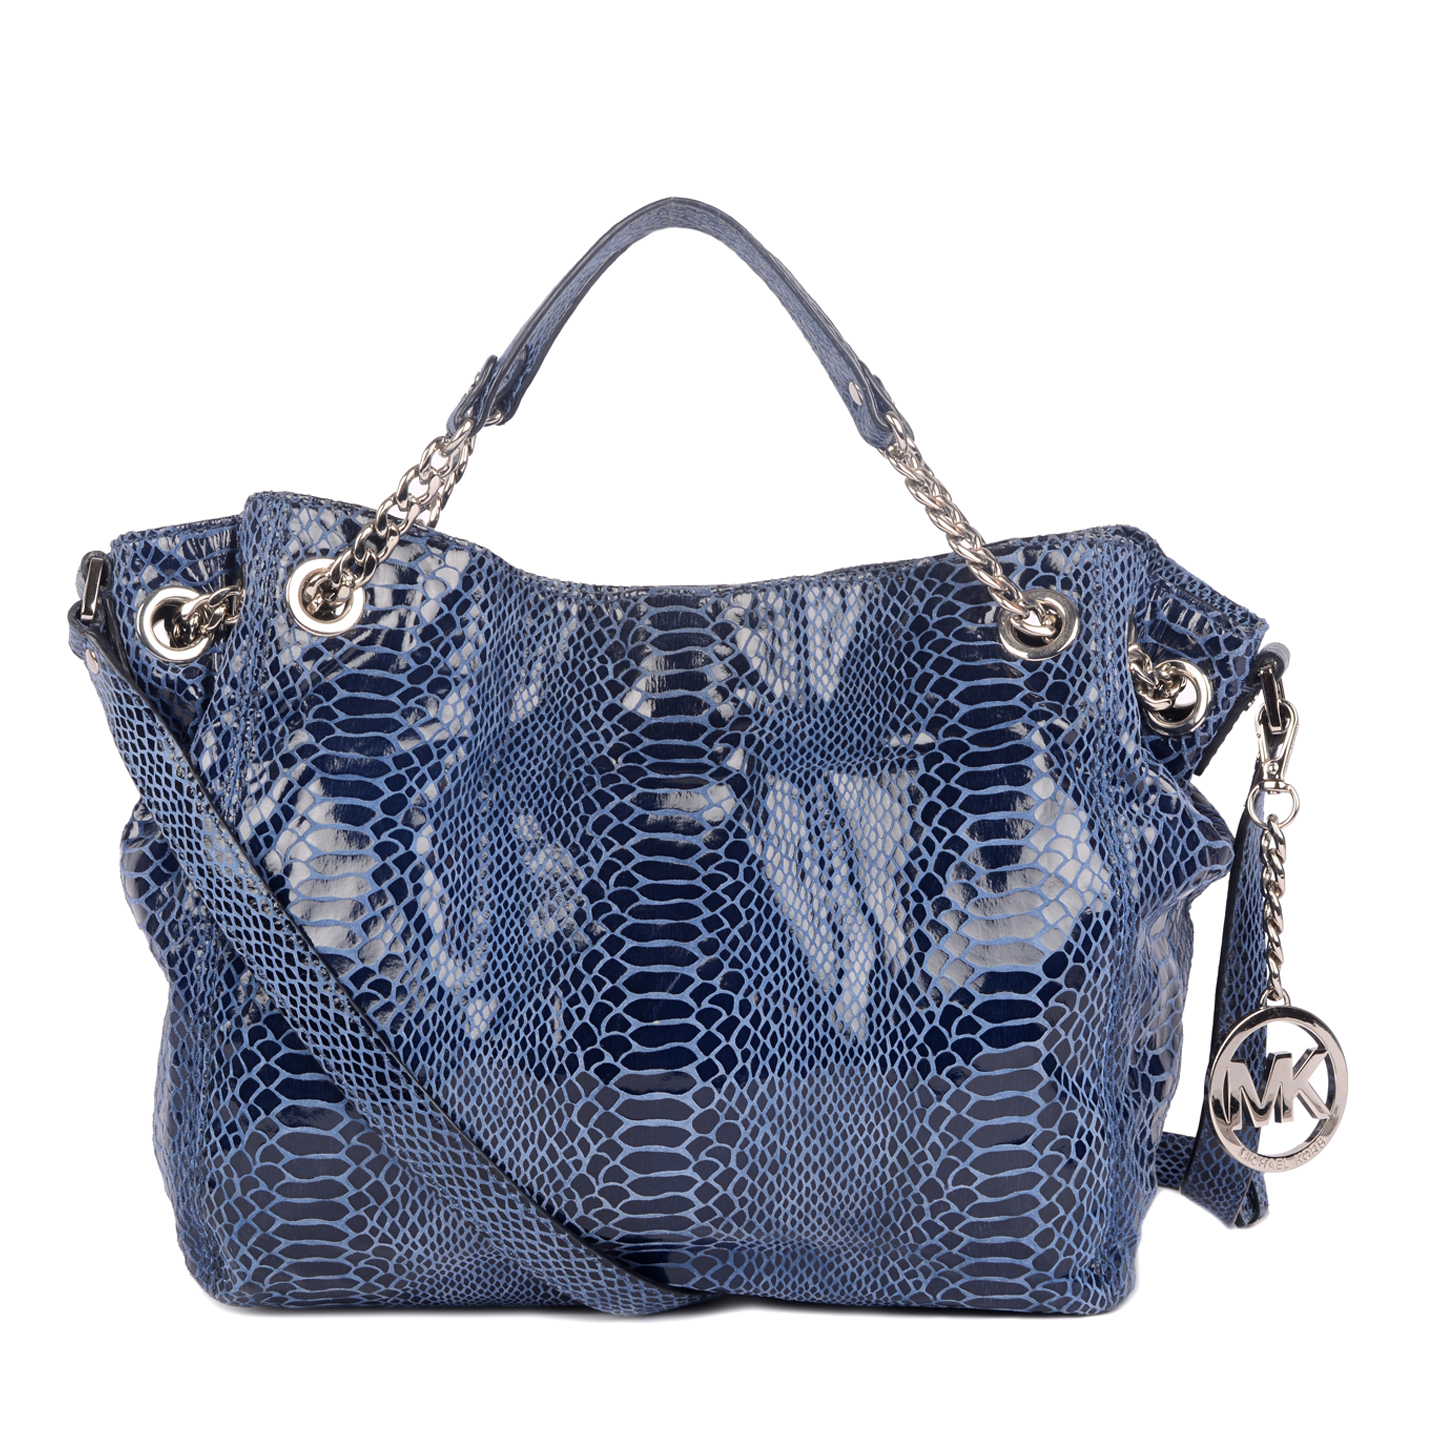 Michael Kors Jet Set Chain Gather Shoulder Tote, Blue Python Embossed 01